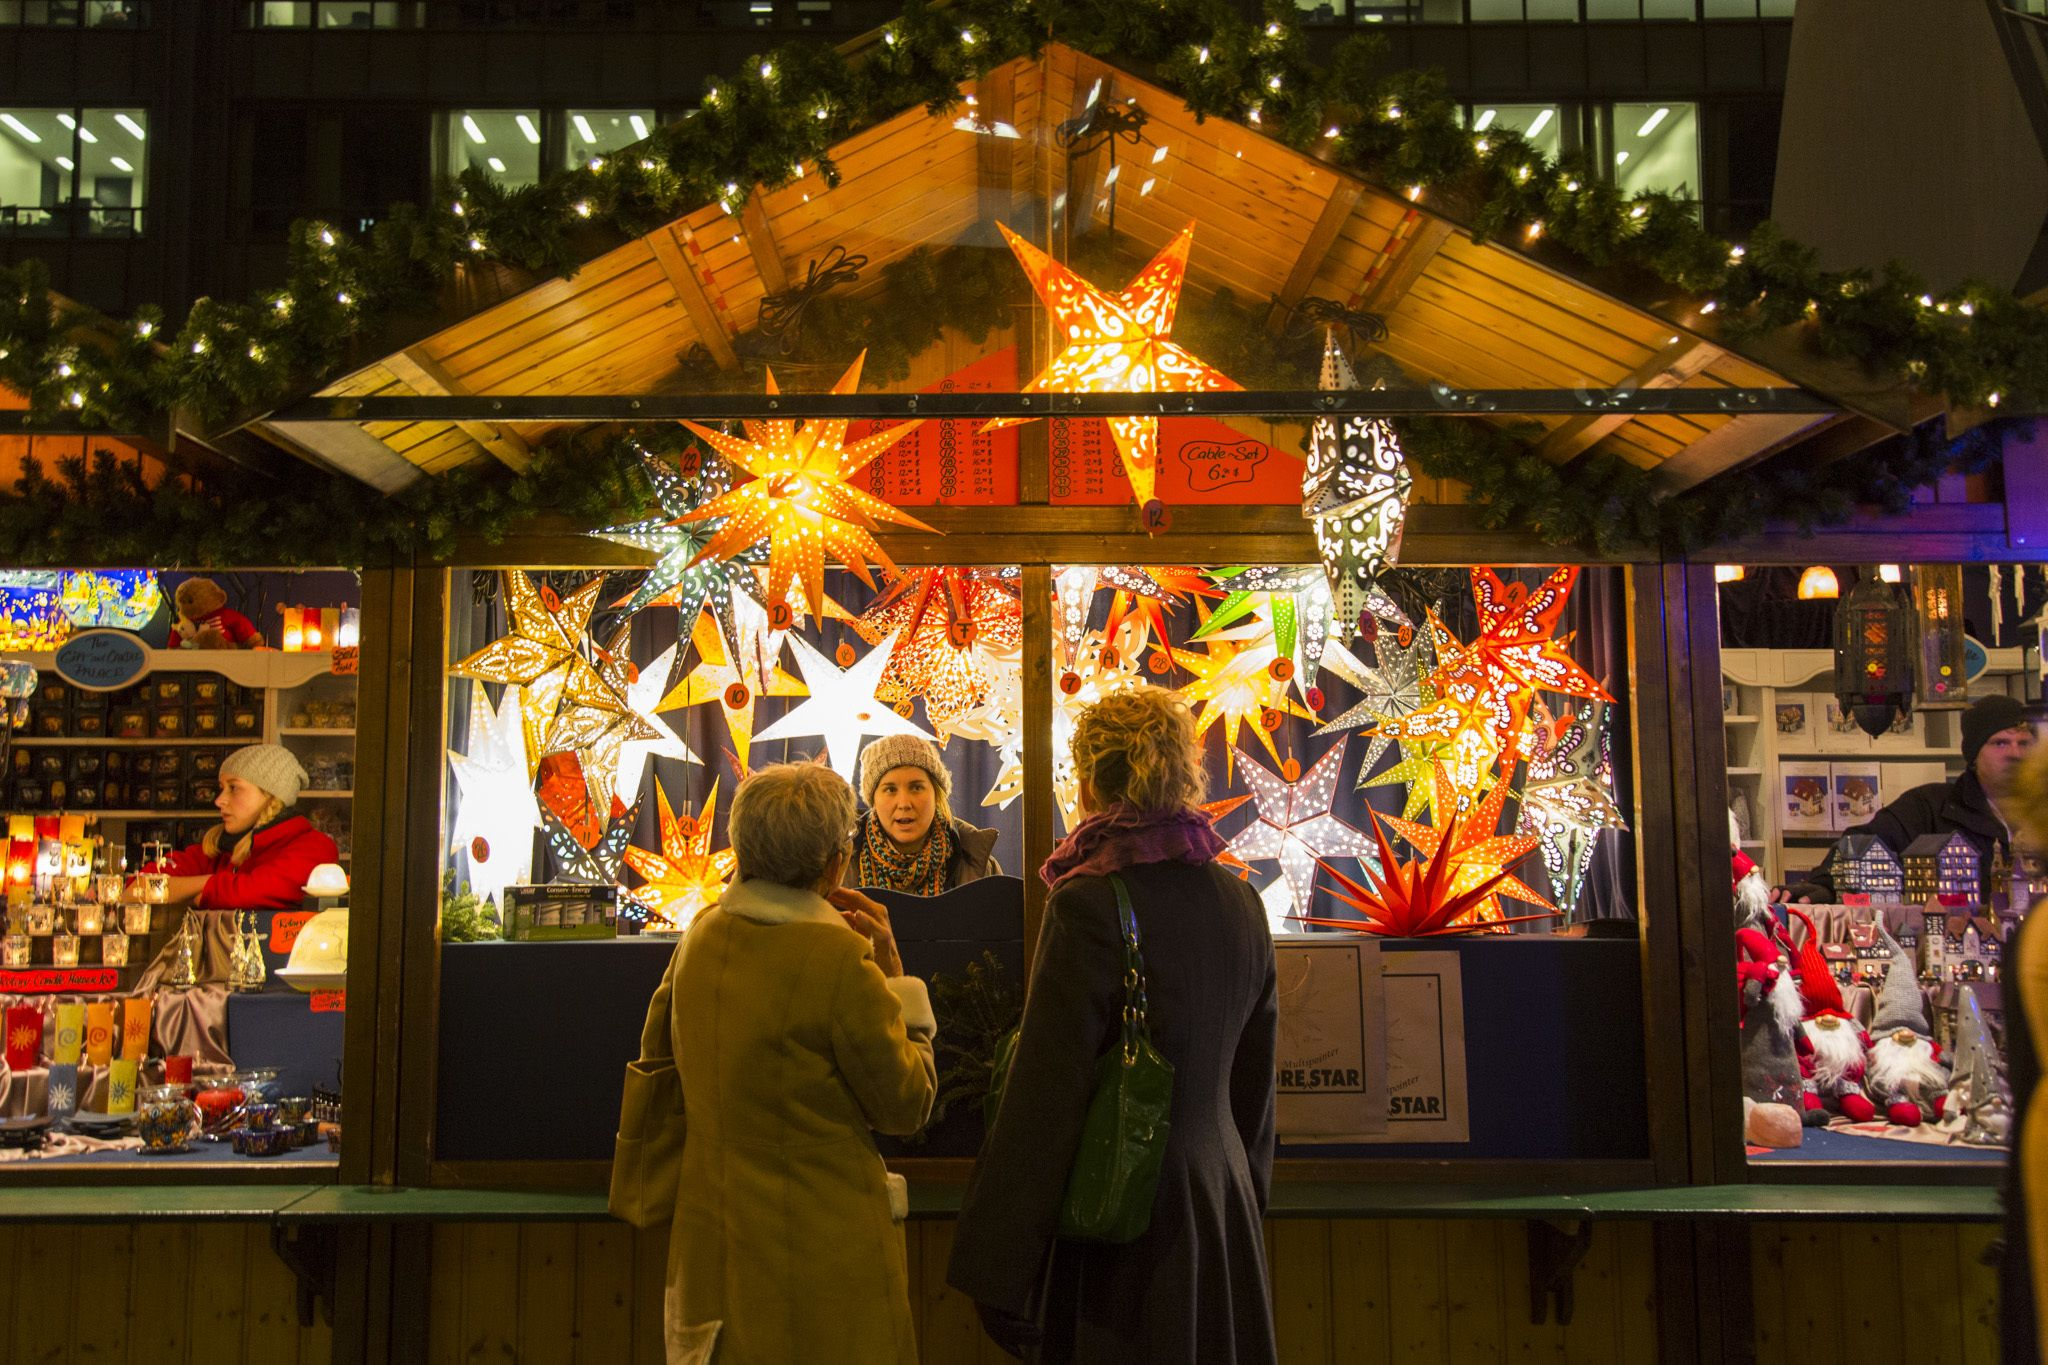 The Park at Wrigley will get its own Christkindlmarket